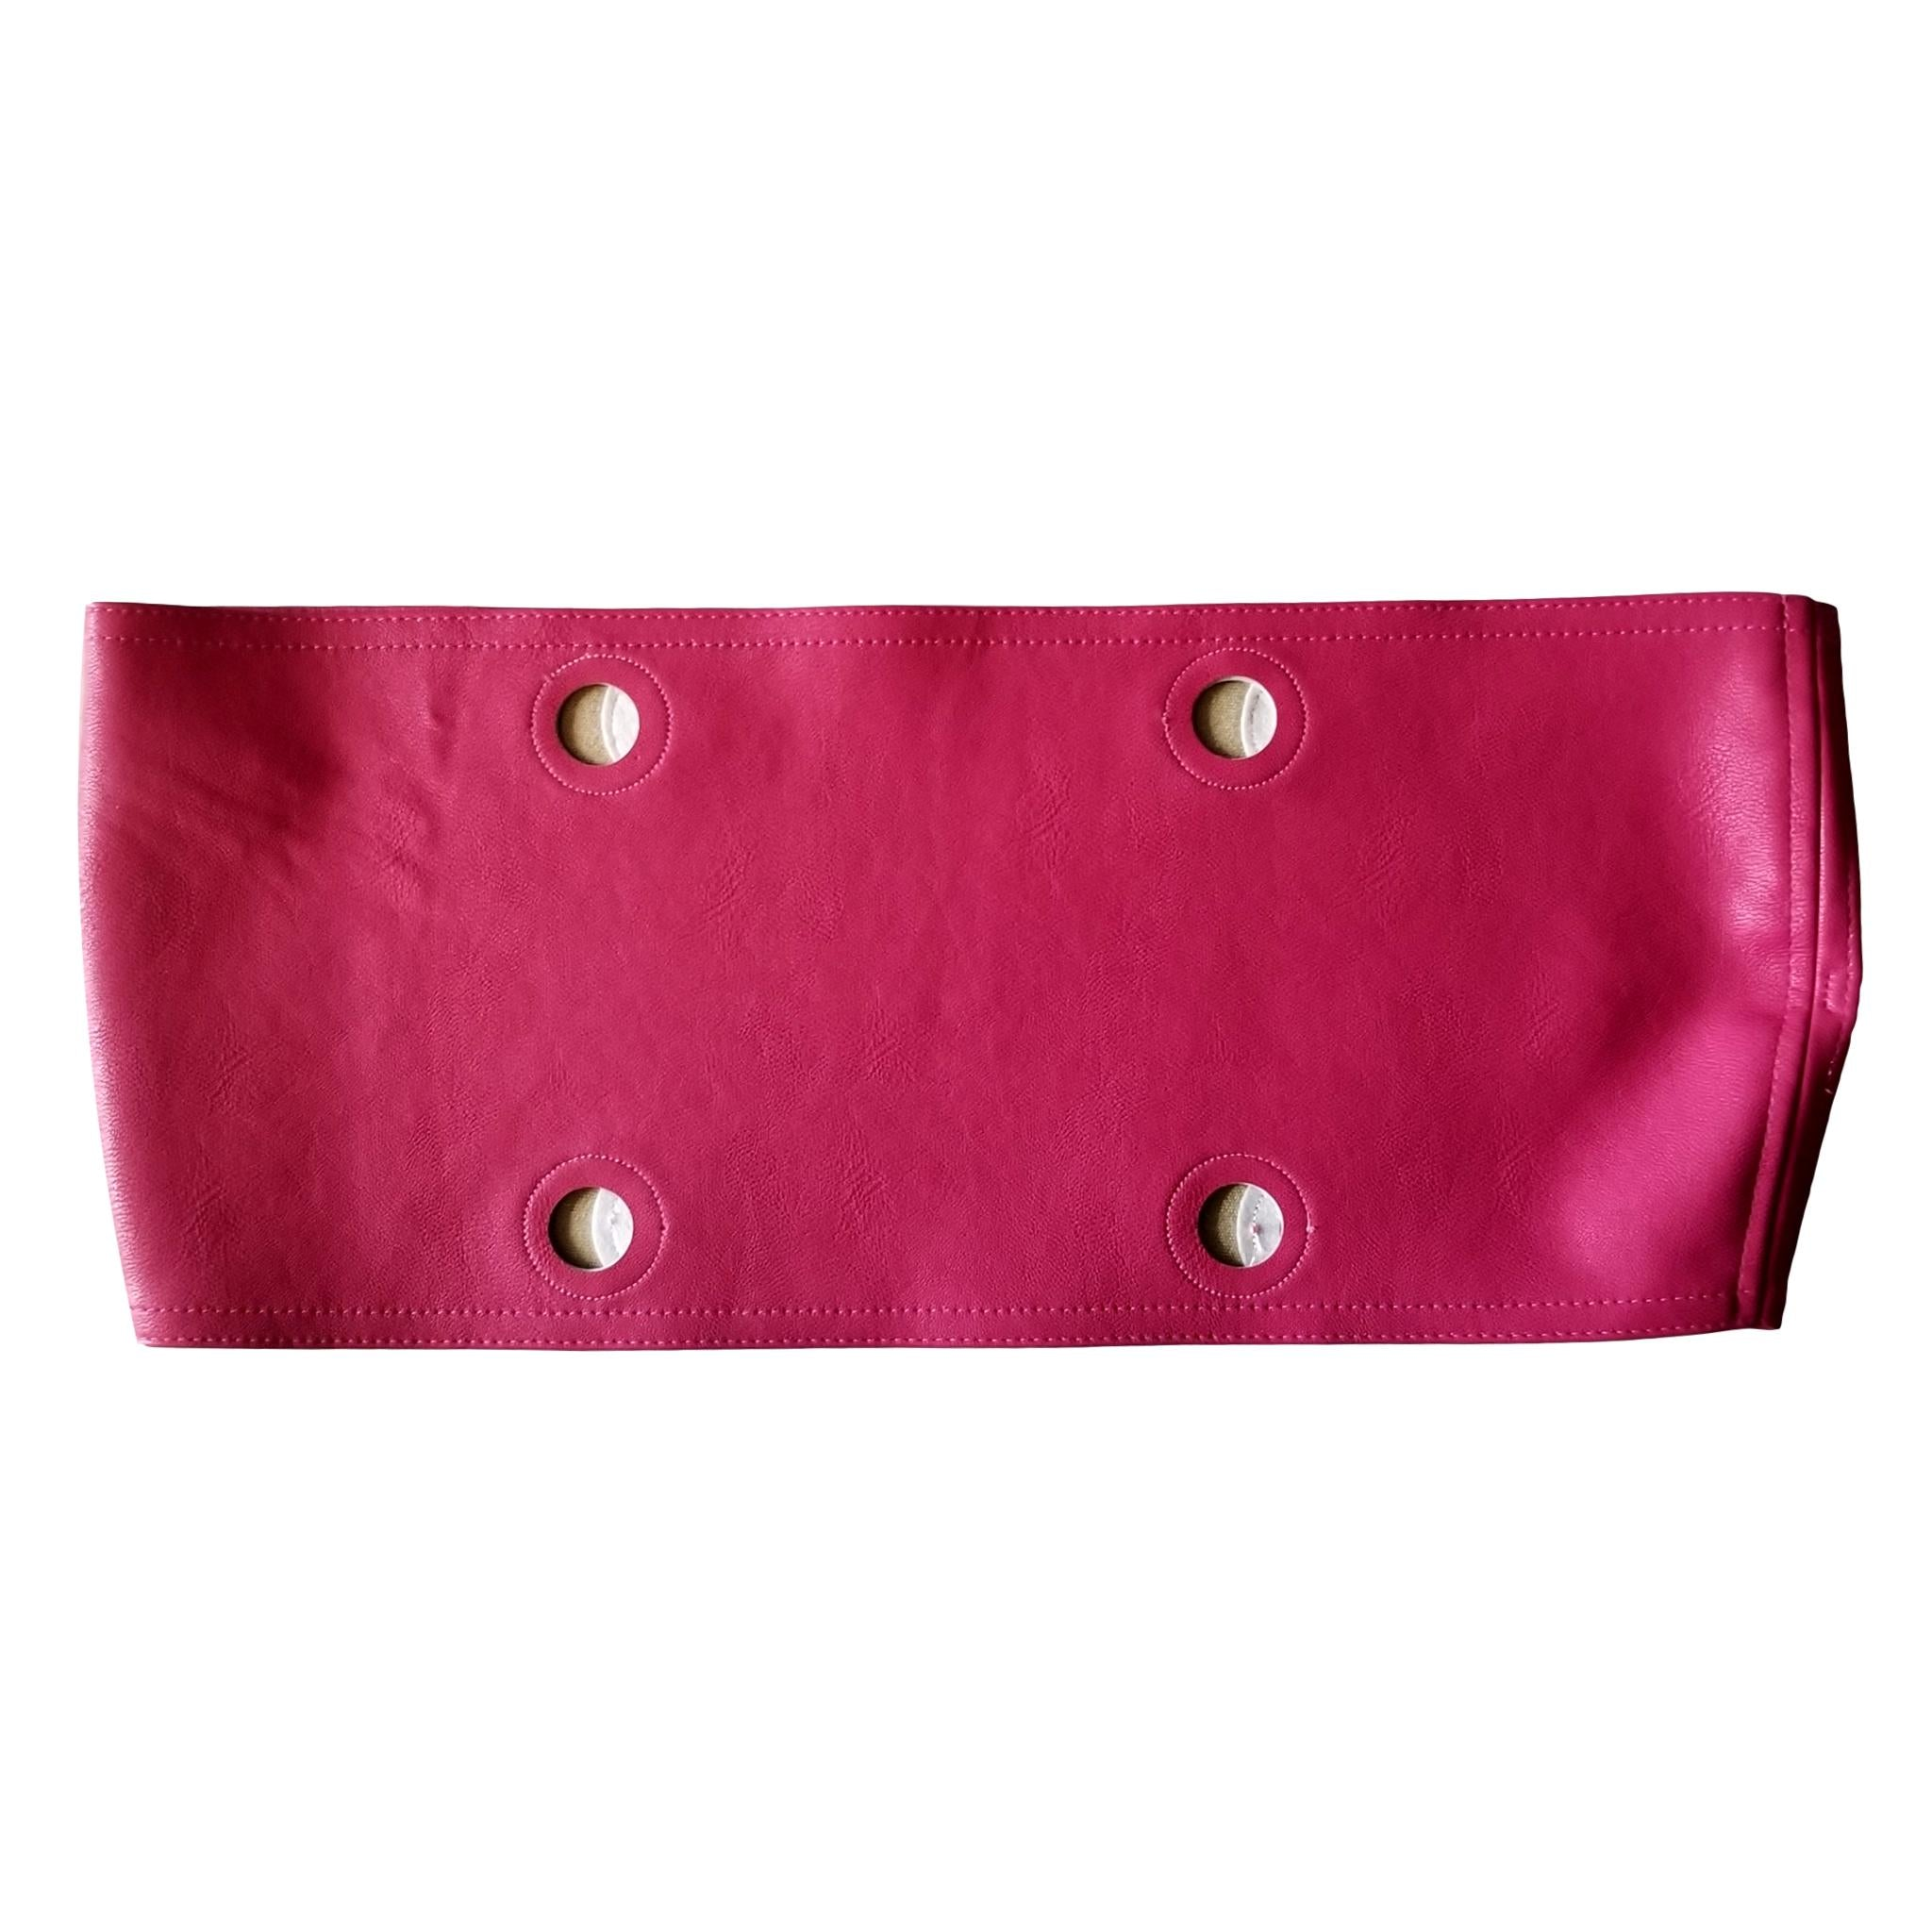 SLO Fashion Handbags. Faux Leather Pink Trim accessory